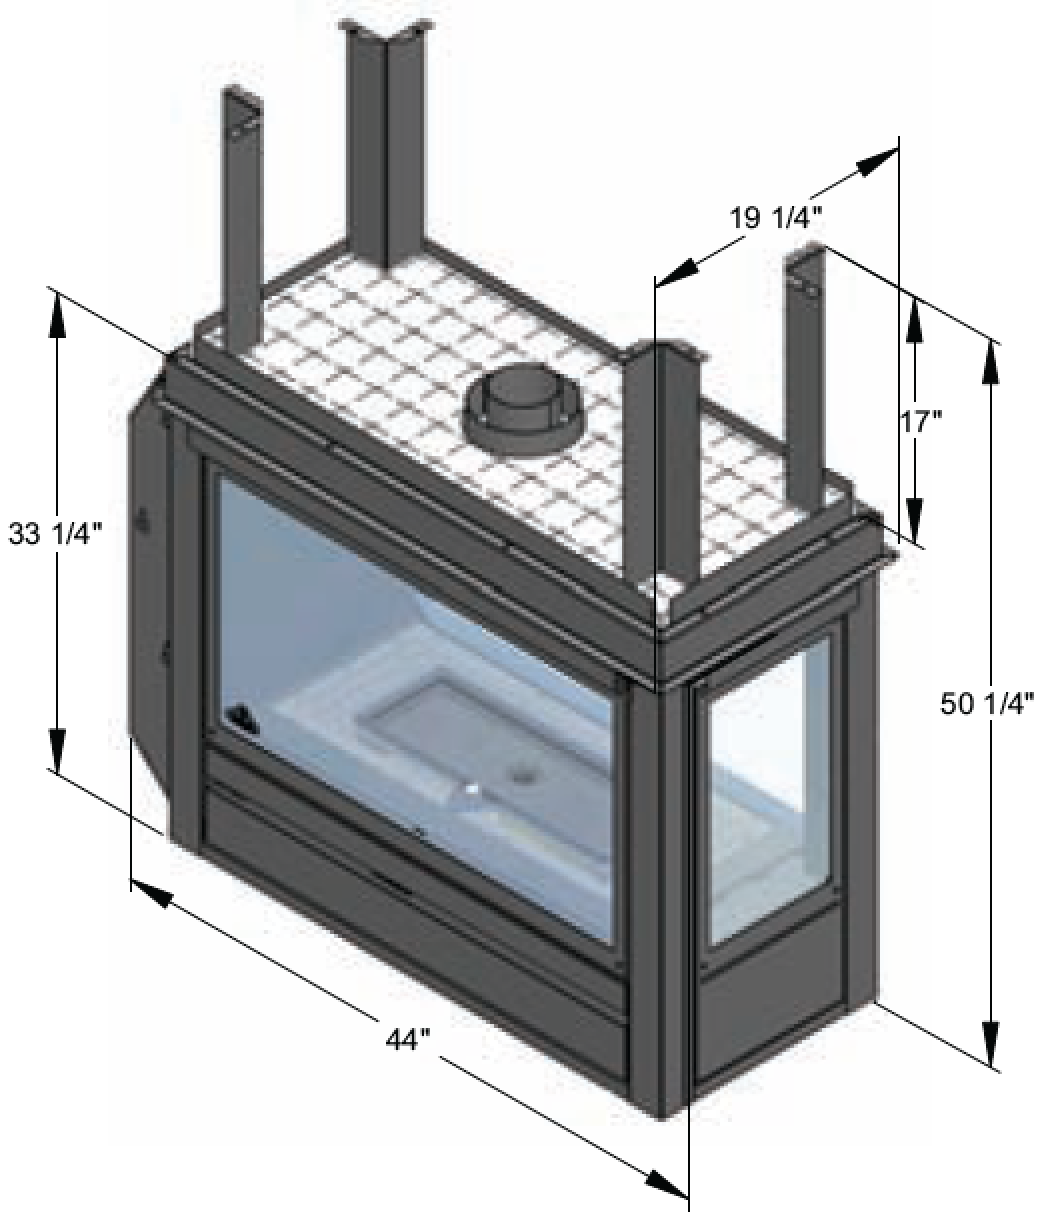 Lennox 3 Sided Propane Fireplace: J.A. Roby Mistral Peninsula Direct Vent At Obadiah's